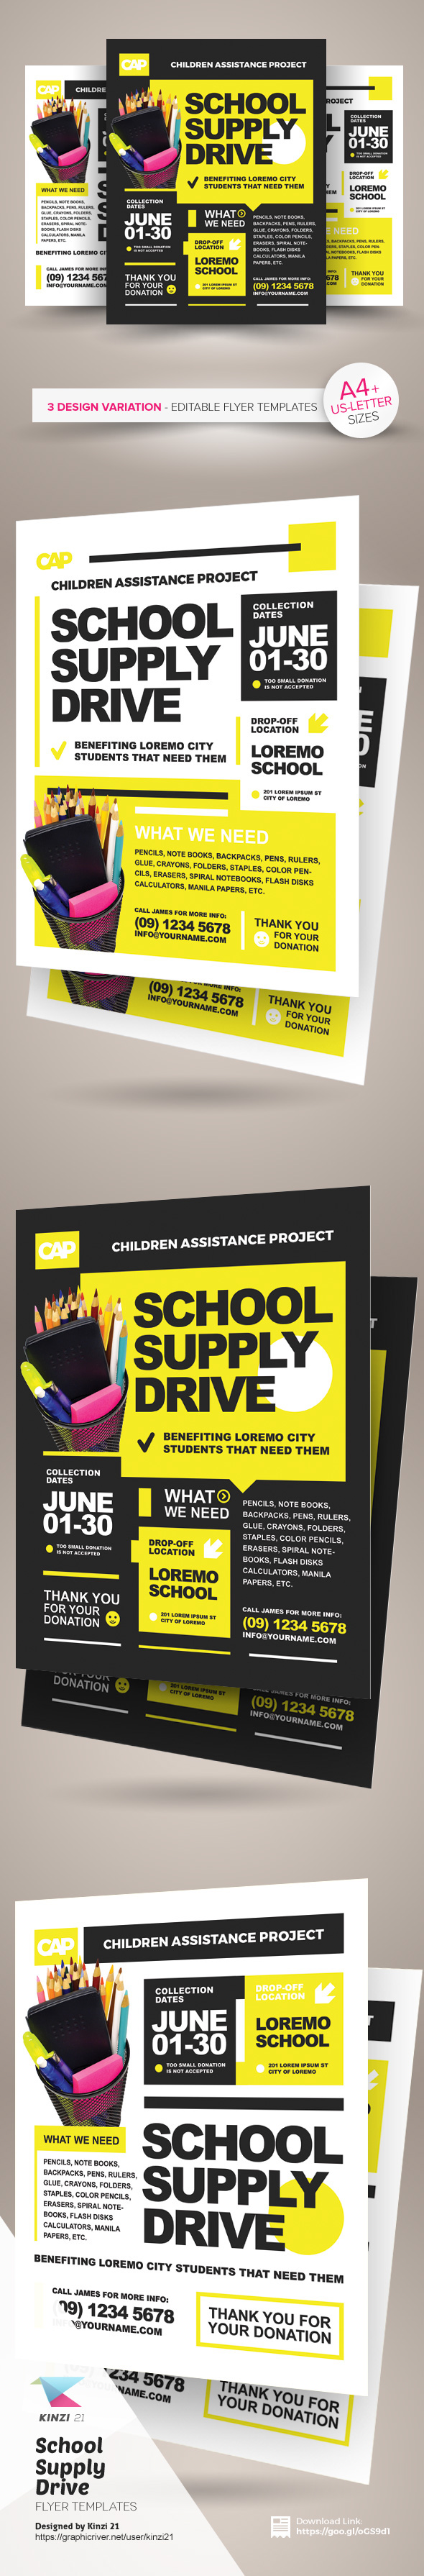 school supply drive flyer templates on behance school supply drive flyer templates are fully editable design templates created for on graphic river more info of the templates and how to get the